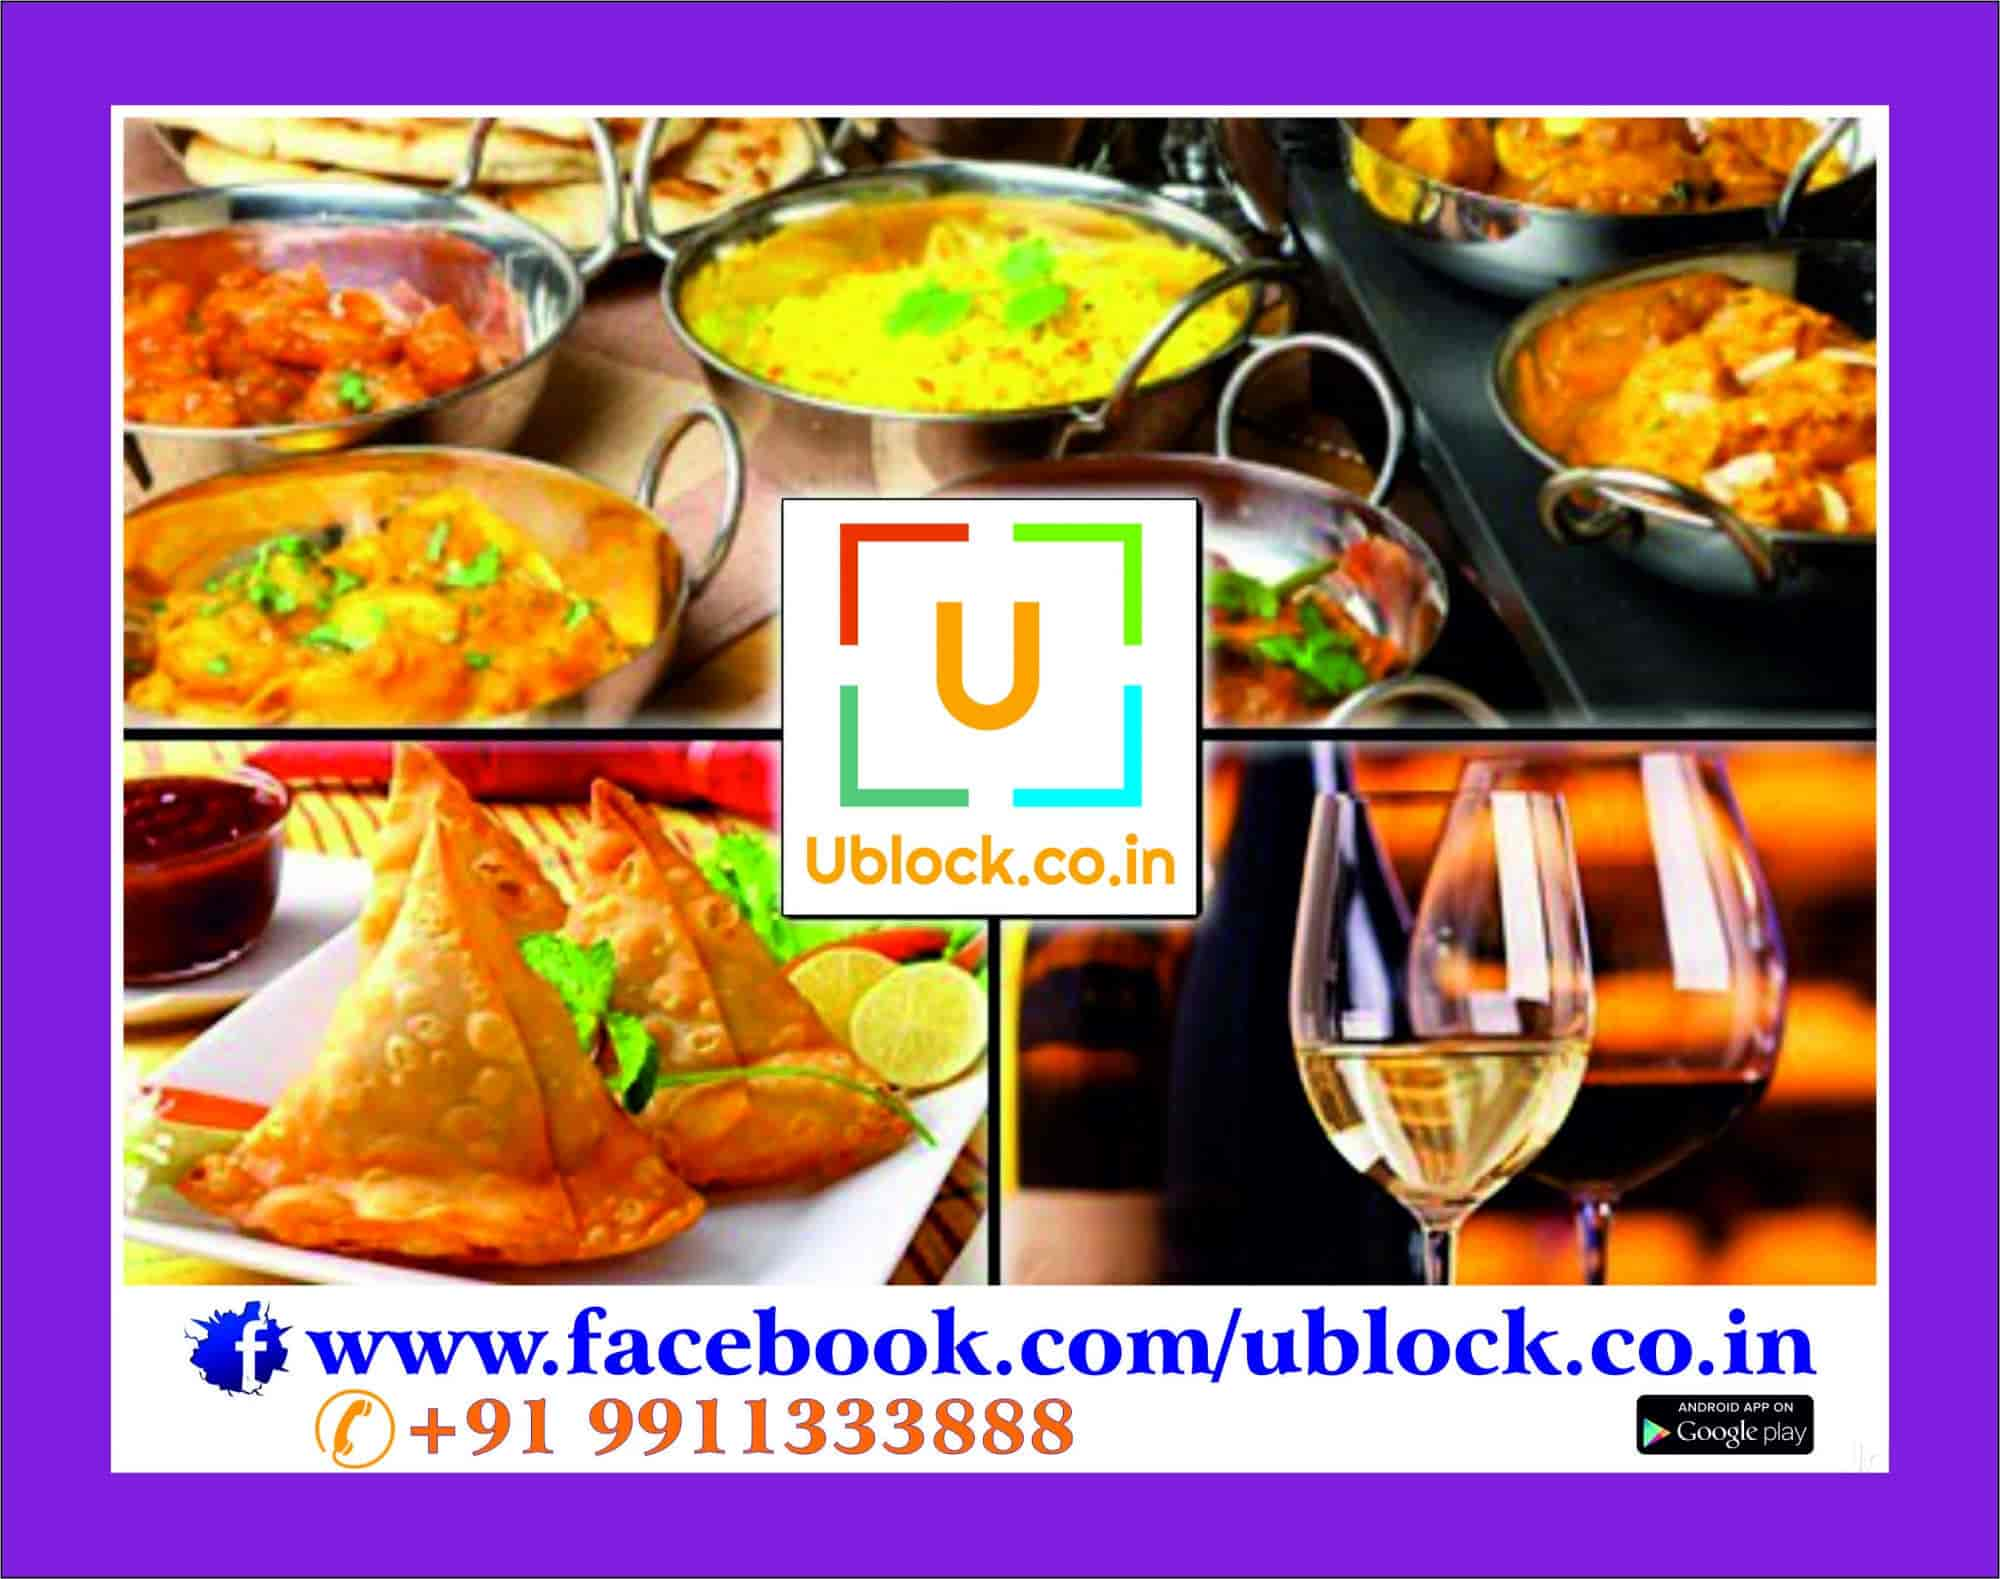 Ublock co in, Dlf City Phase 3, Delhi - Chinese, Breakfast, North